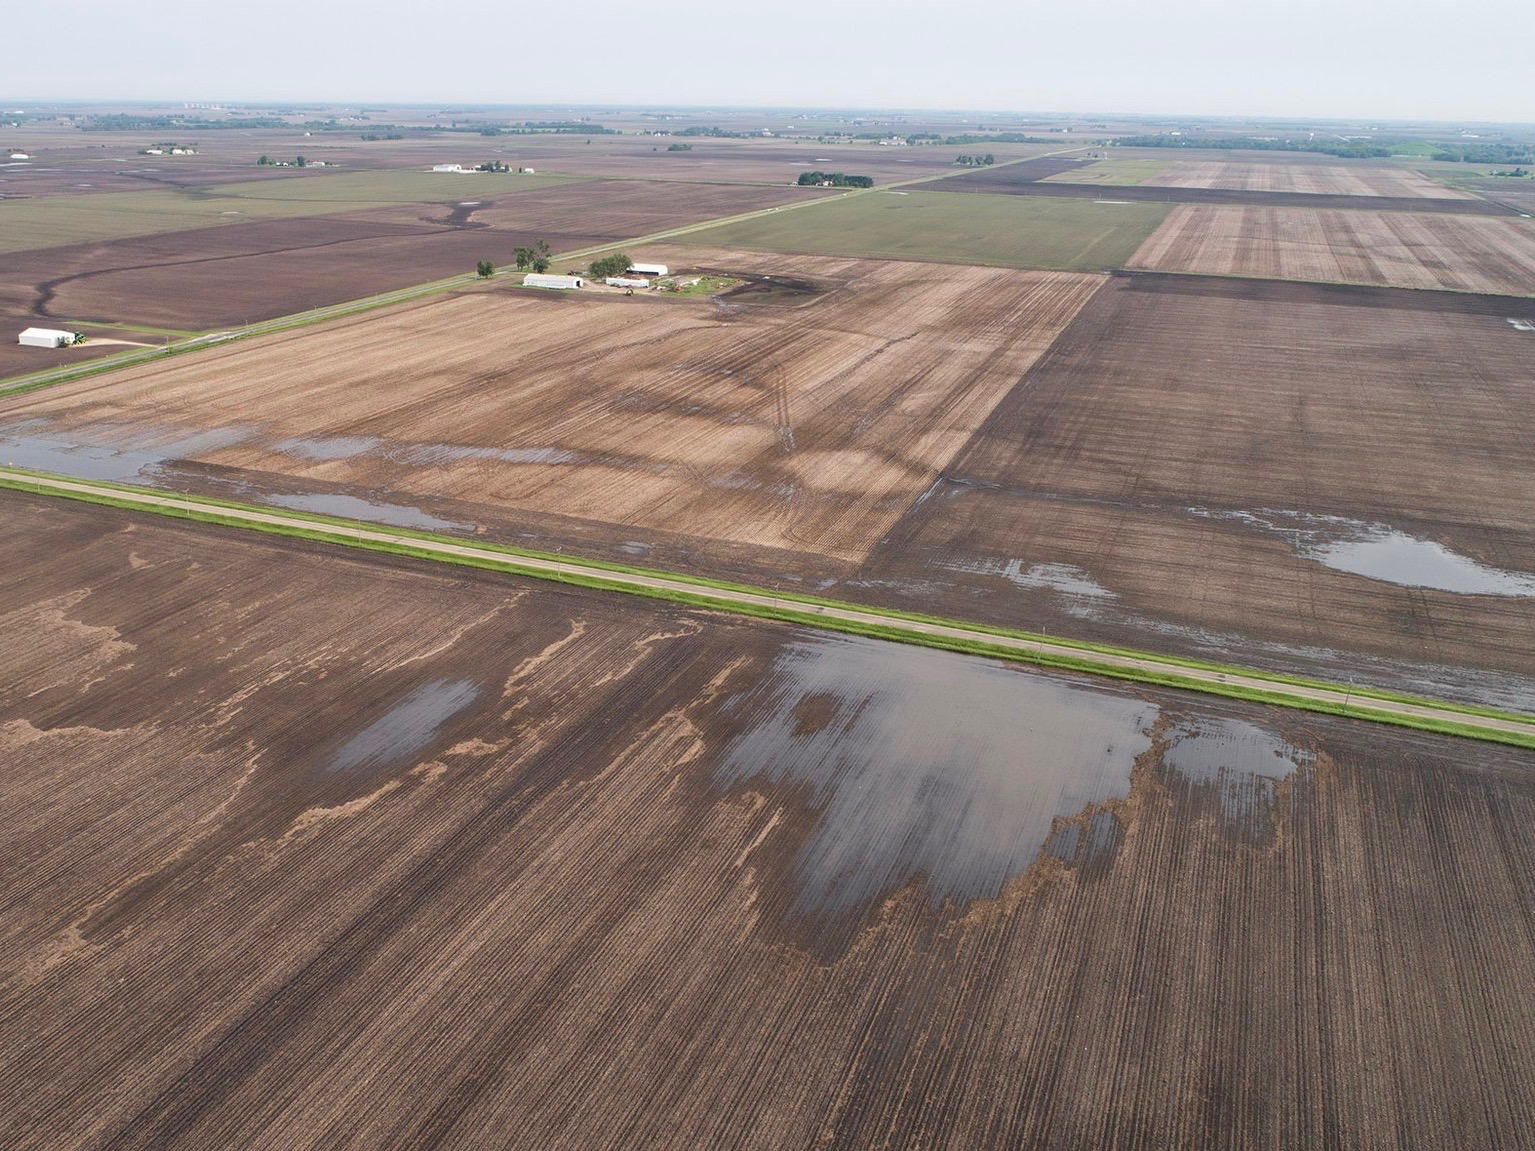 Many Illinois farms remain flooded, and farmers are weighing their options for a lost crop. (Twitter/Illinois Farm Bureau)